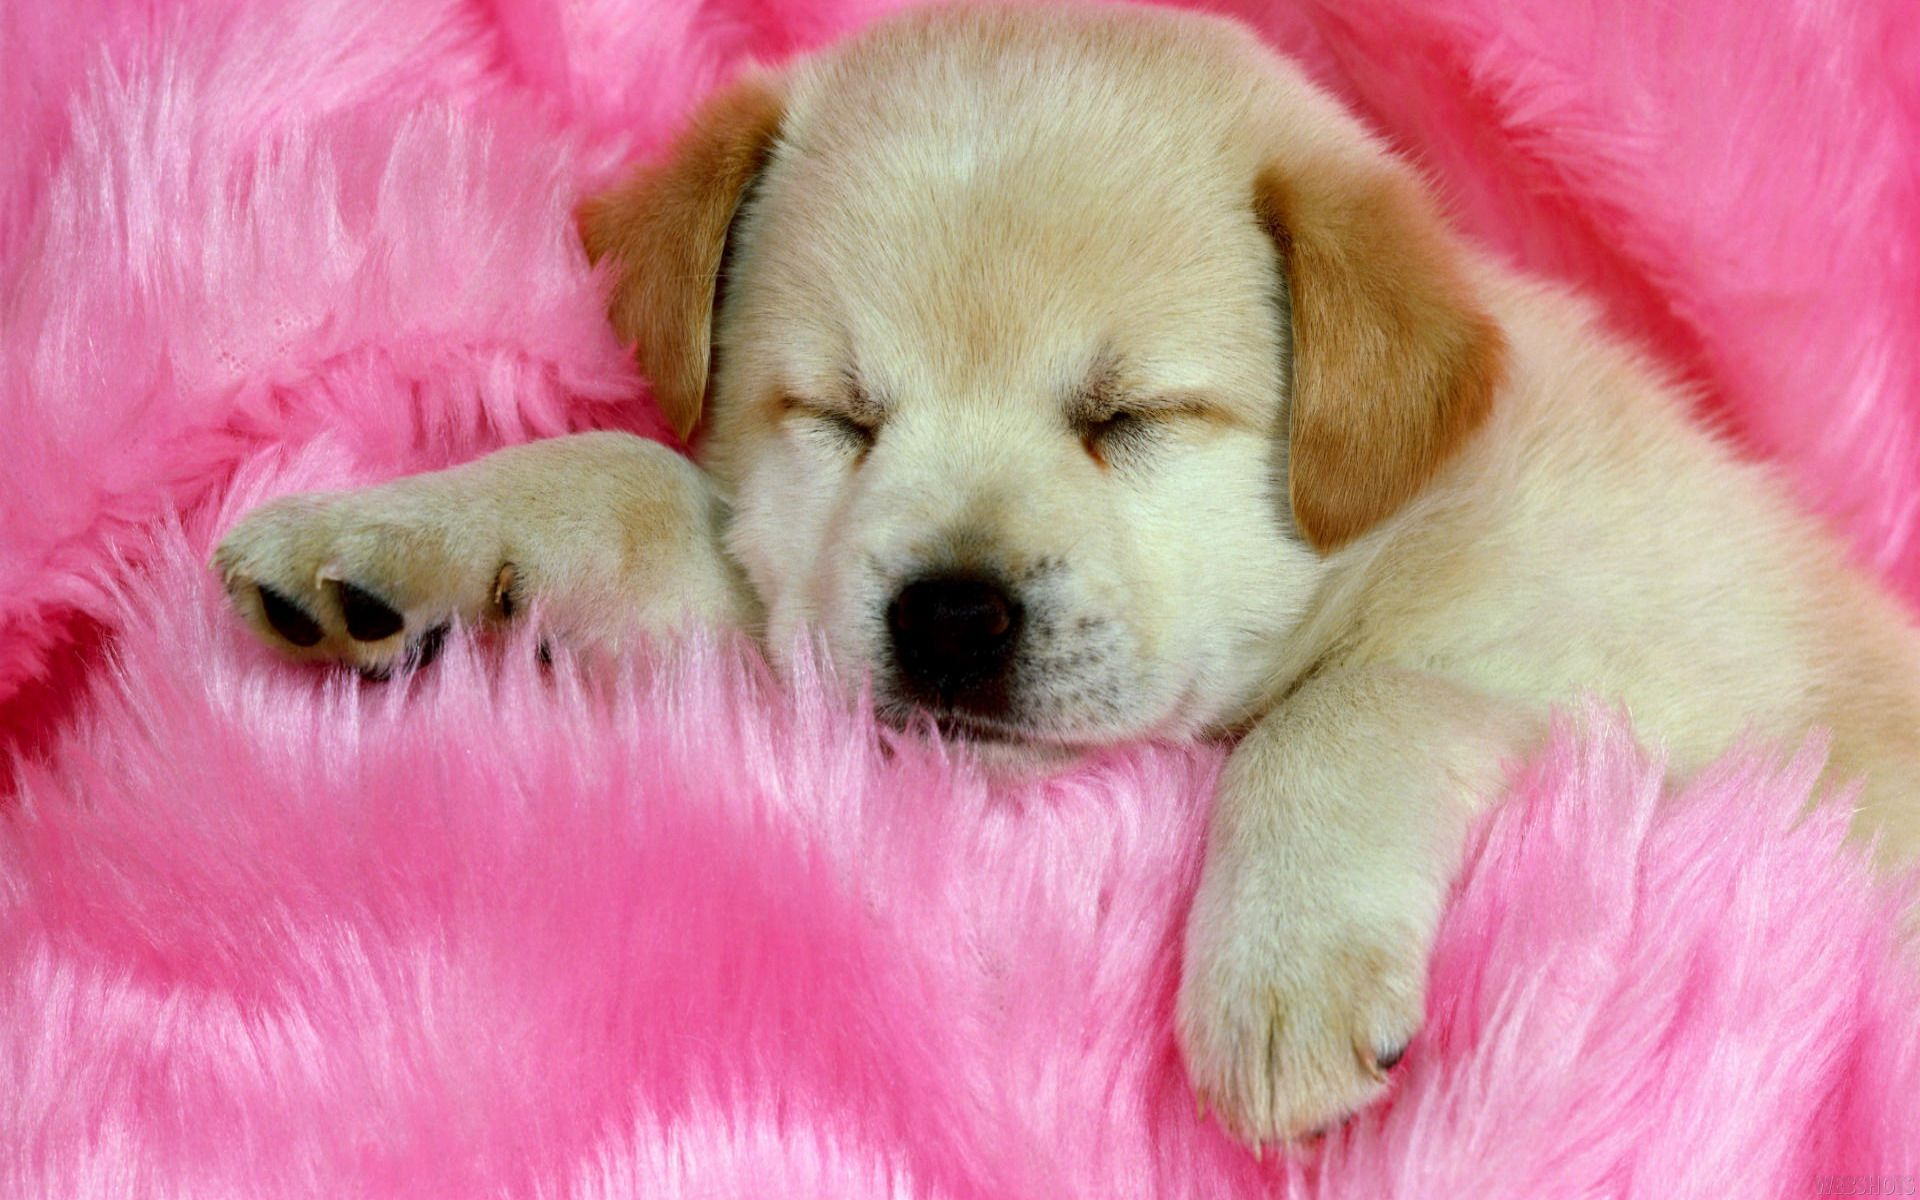 Cute Dog Wallpaper Android Apps on Google Play